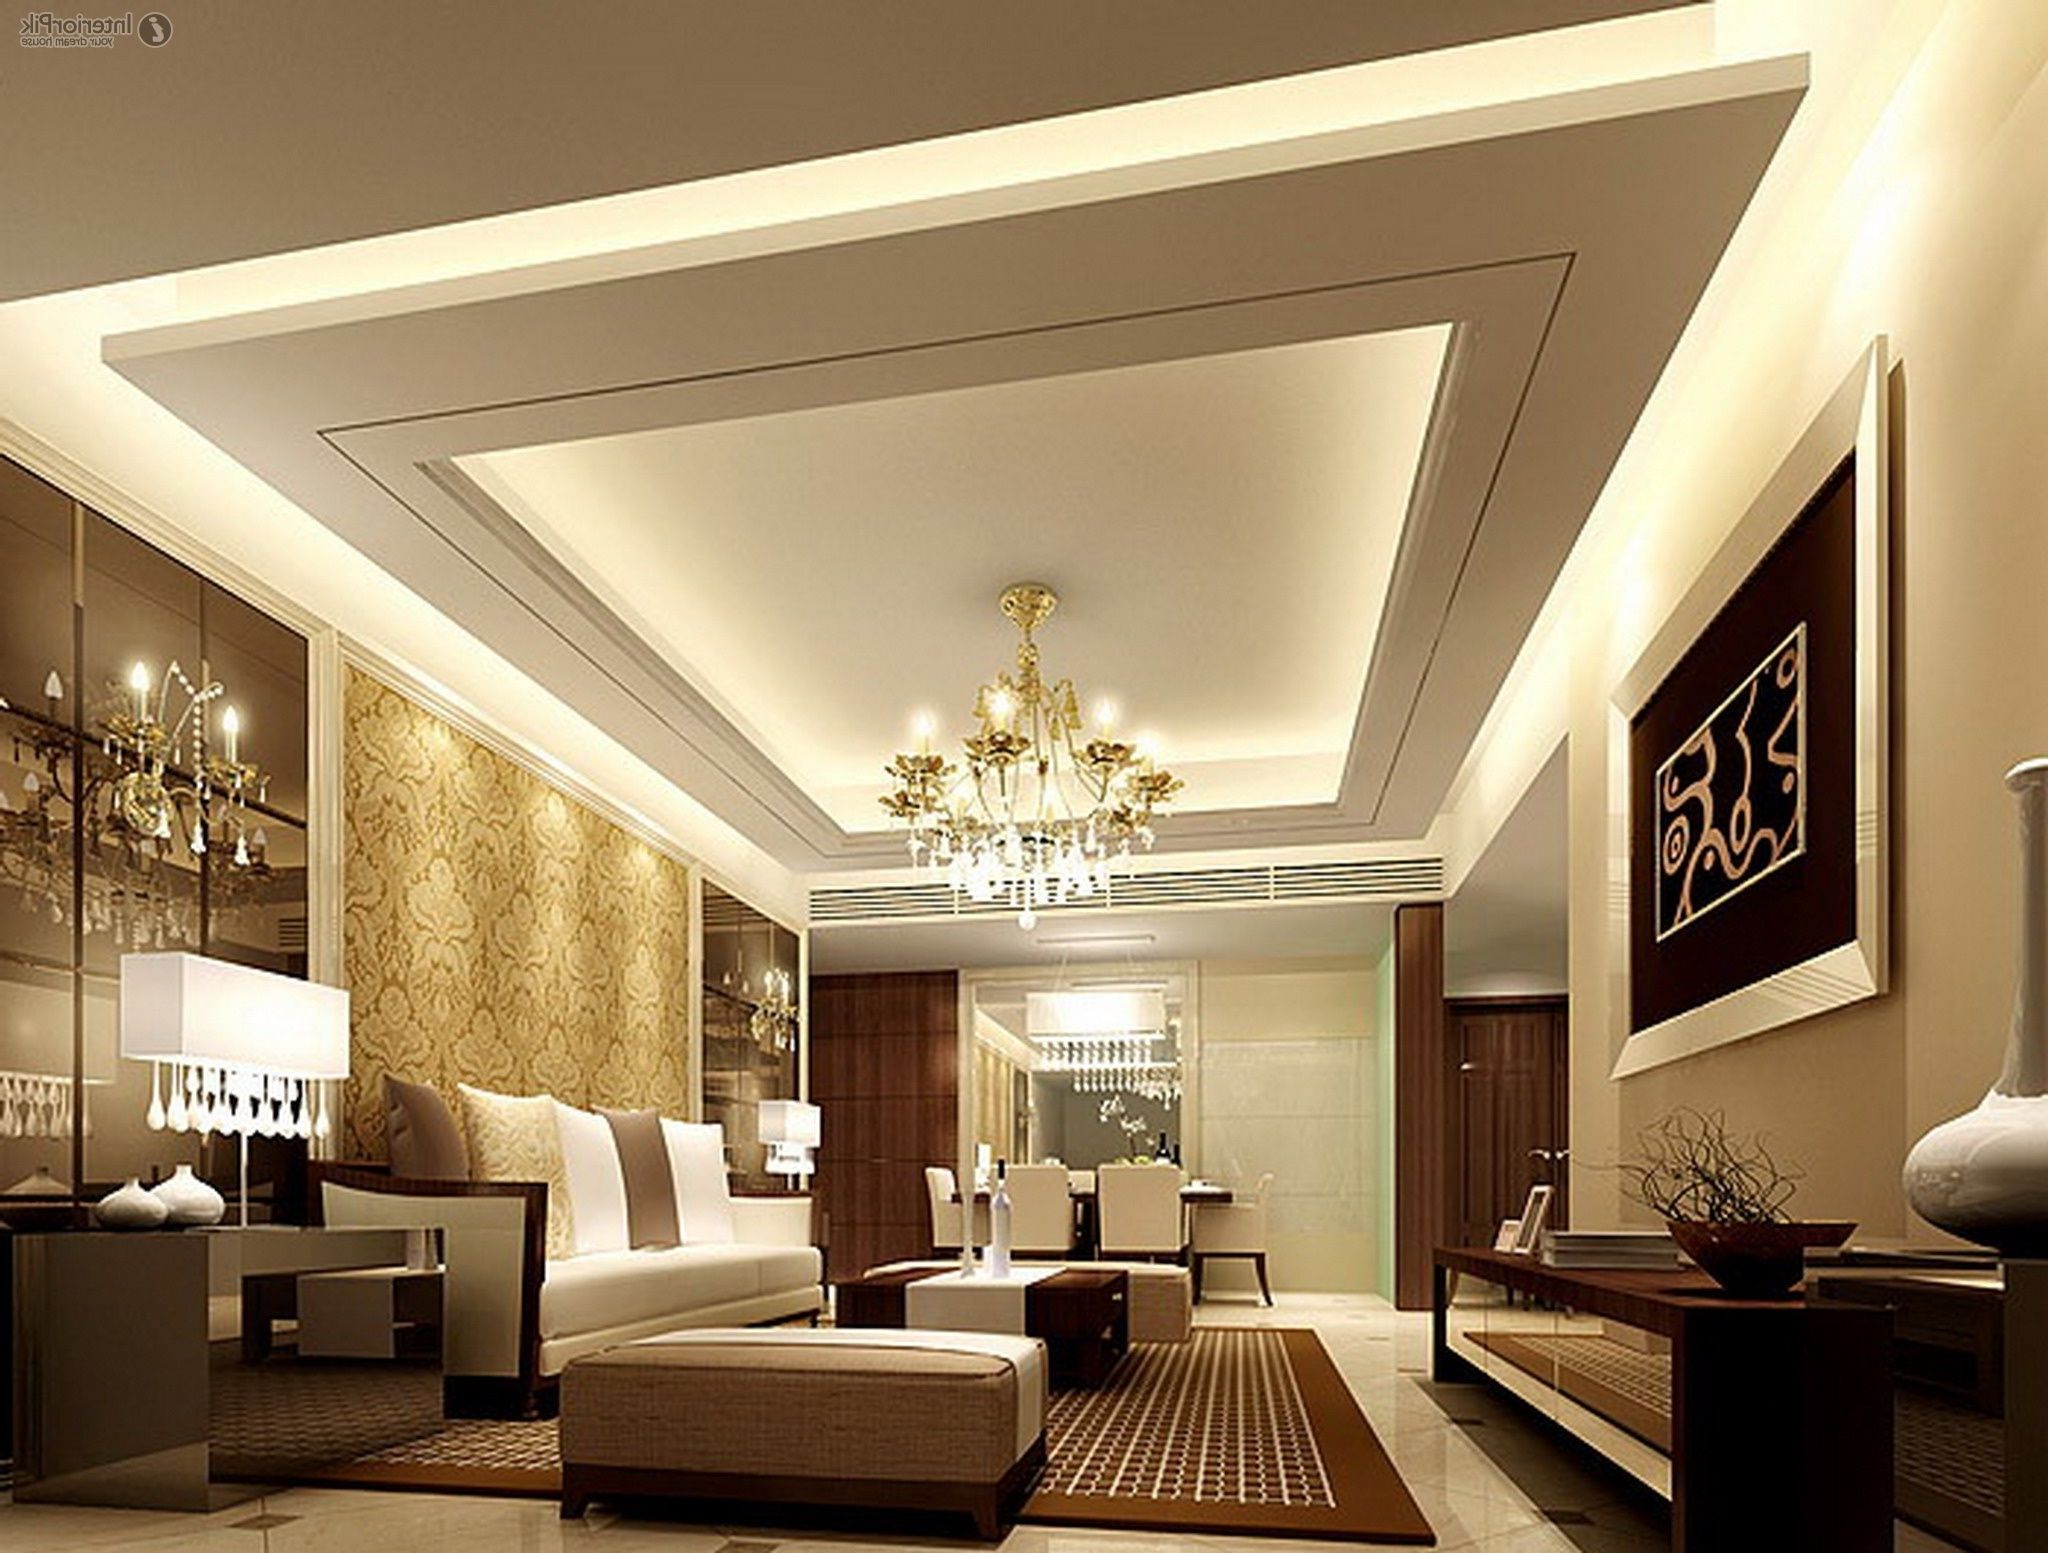 Gypsum Ceiling Design For Living Room Lighting